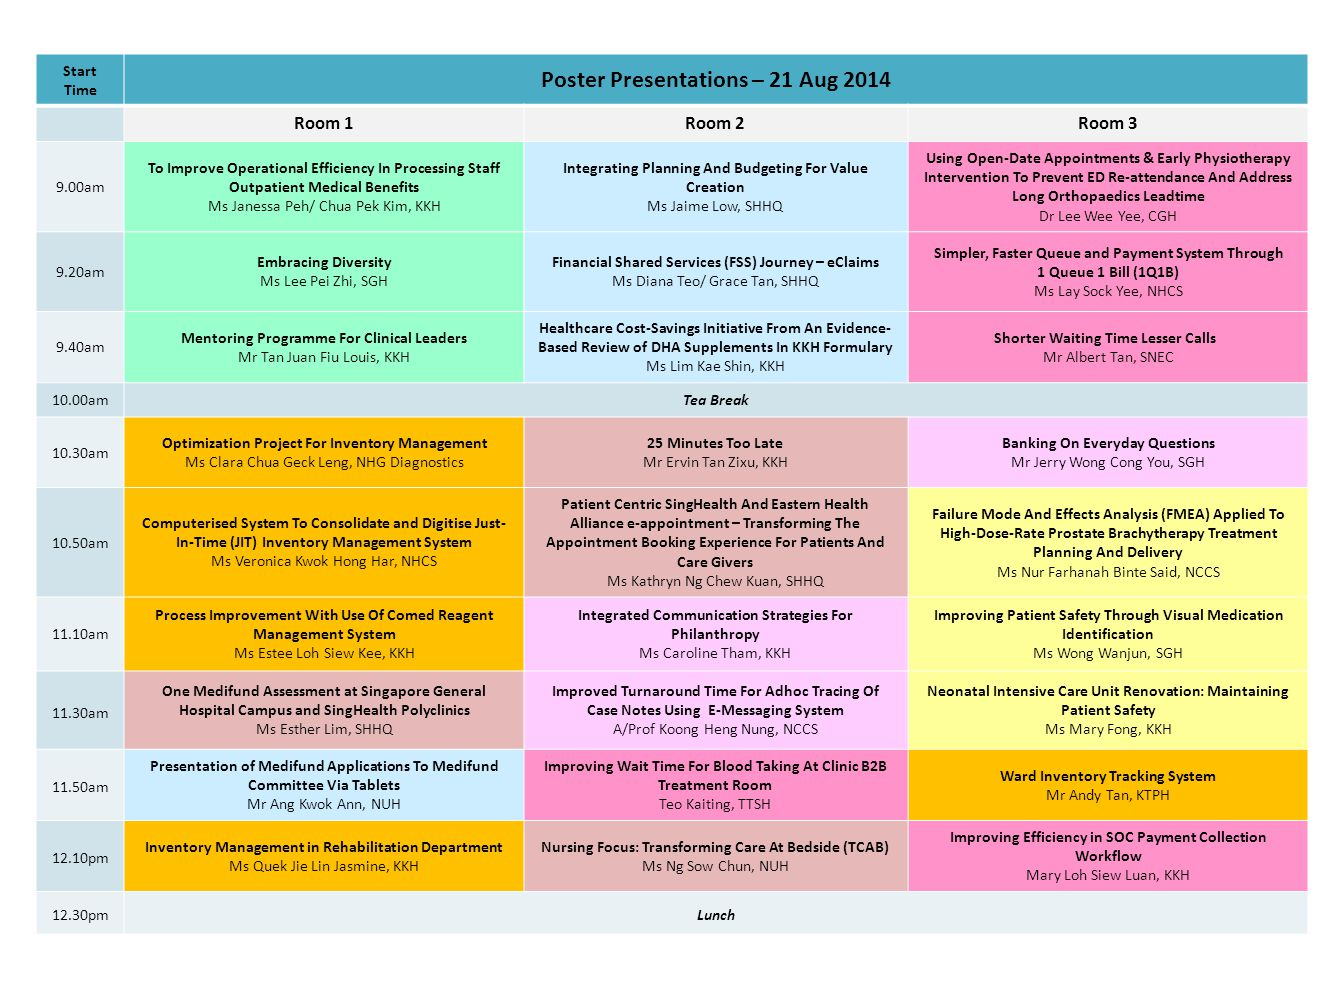 Start Time Poster Presentations – 21 Aug 2014 Room 1Room 2Room 3 9.00am To Improve Operational Efficiency In Processing Staff Outpatient Medical Benef